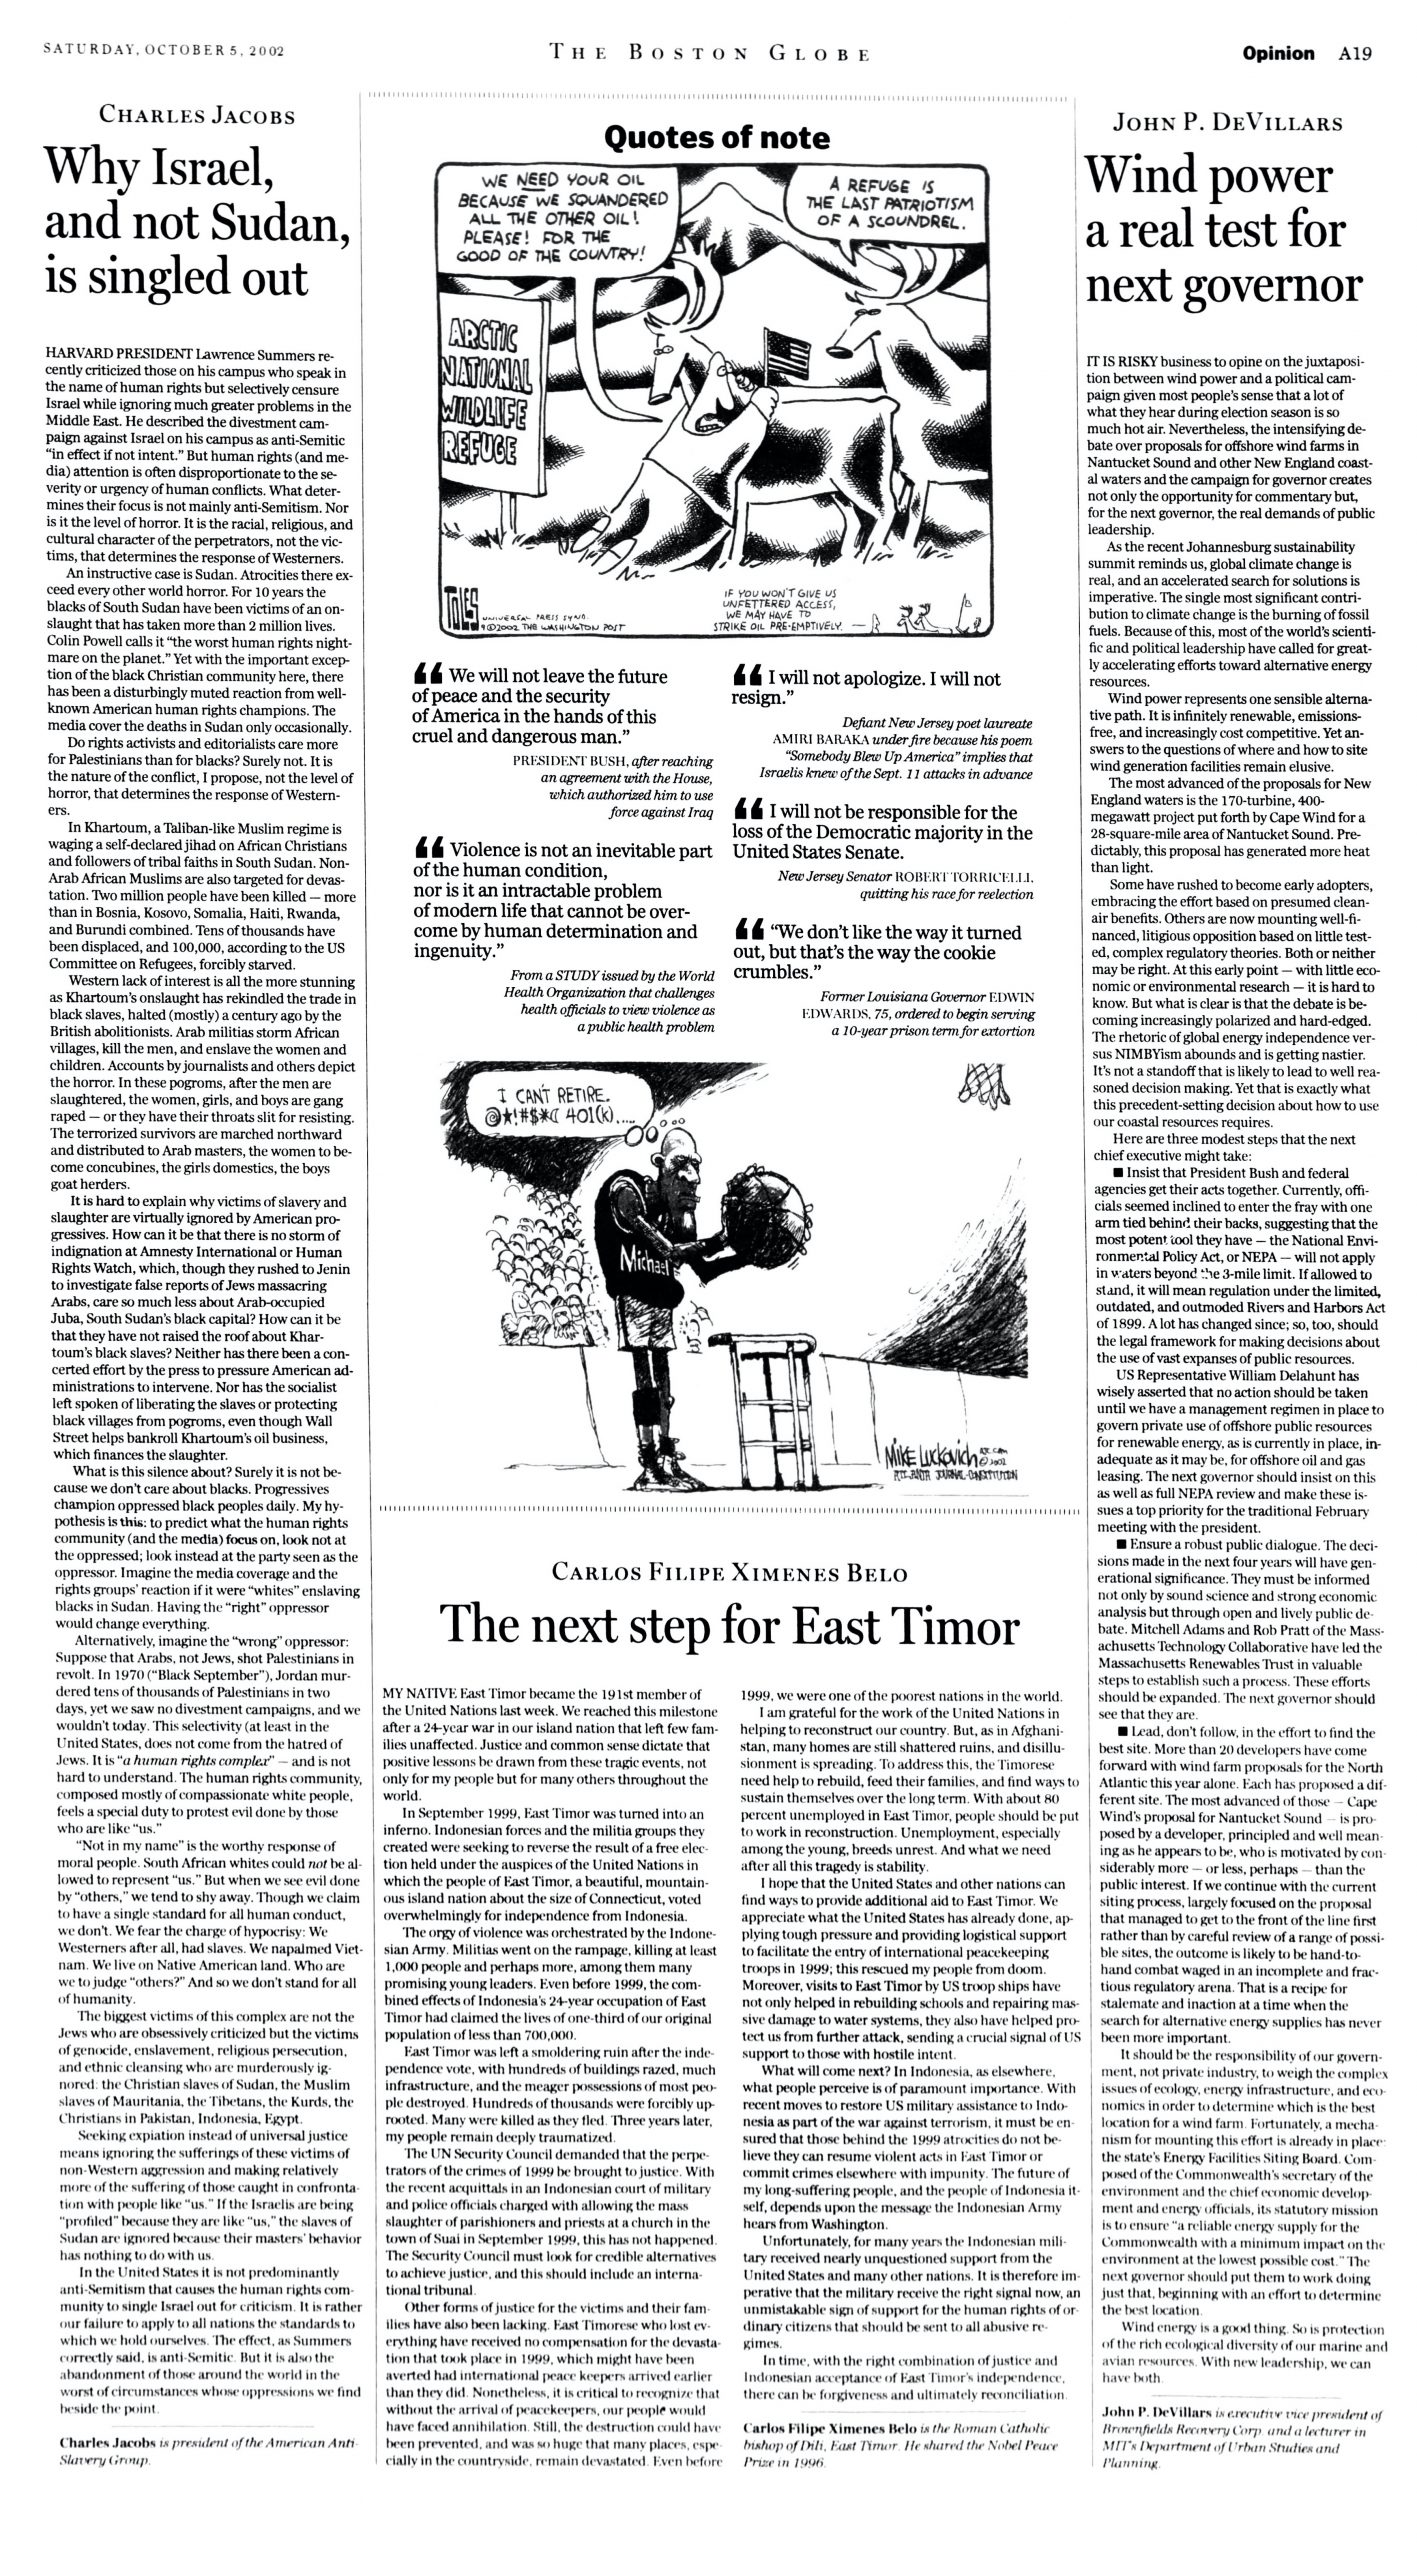 """Dr. Charles Jacobs, """"Why Israel, and not Sudan, is singled out,"""" """"The Boston Globe,"""" October 5, 2002, p. A-19"""